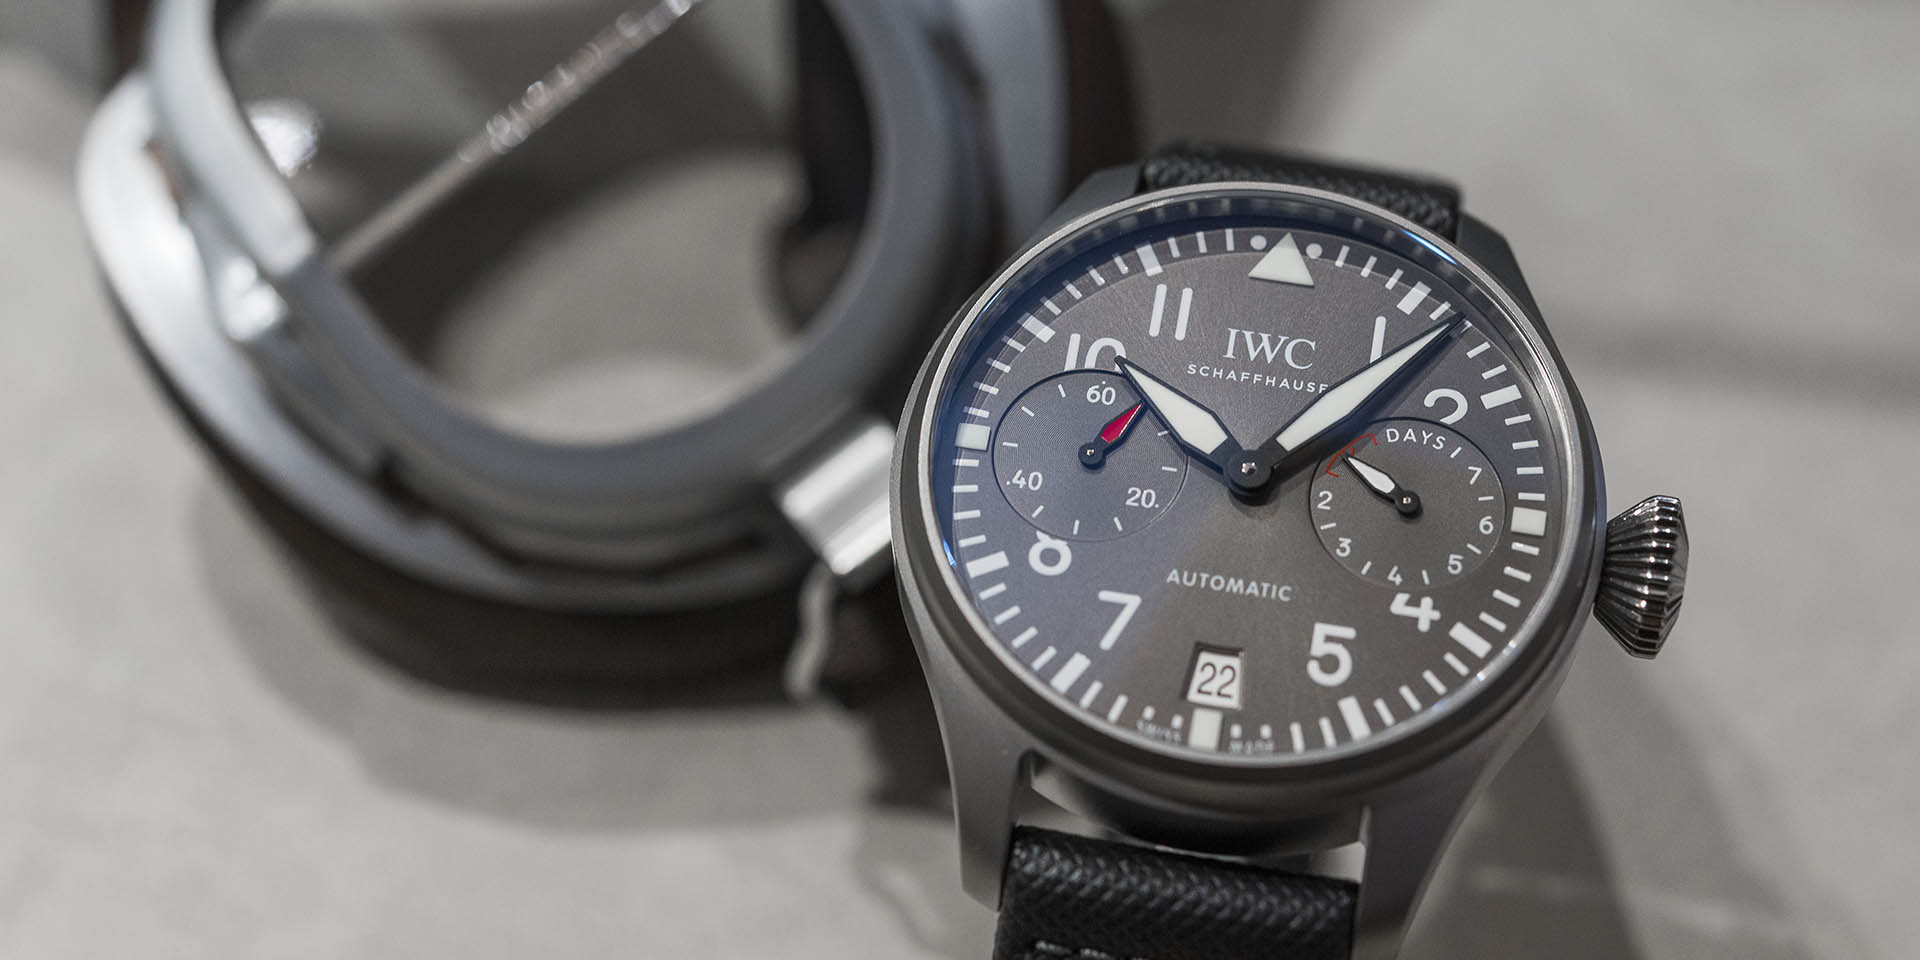 iwc-big-pilot-s-watch-edition-patrouille-suisse-iw500910-2-.jpg